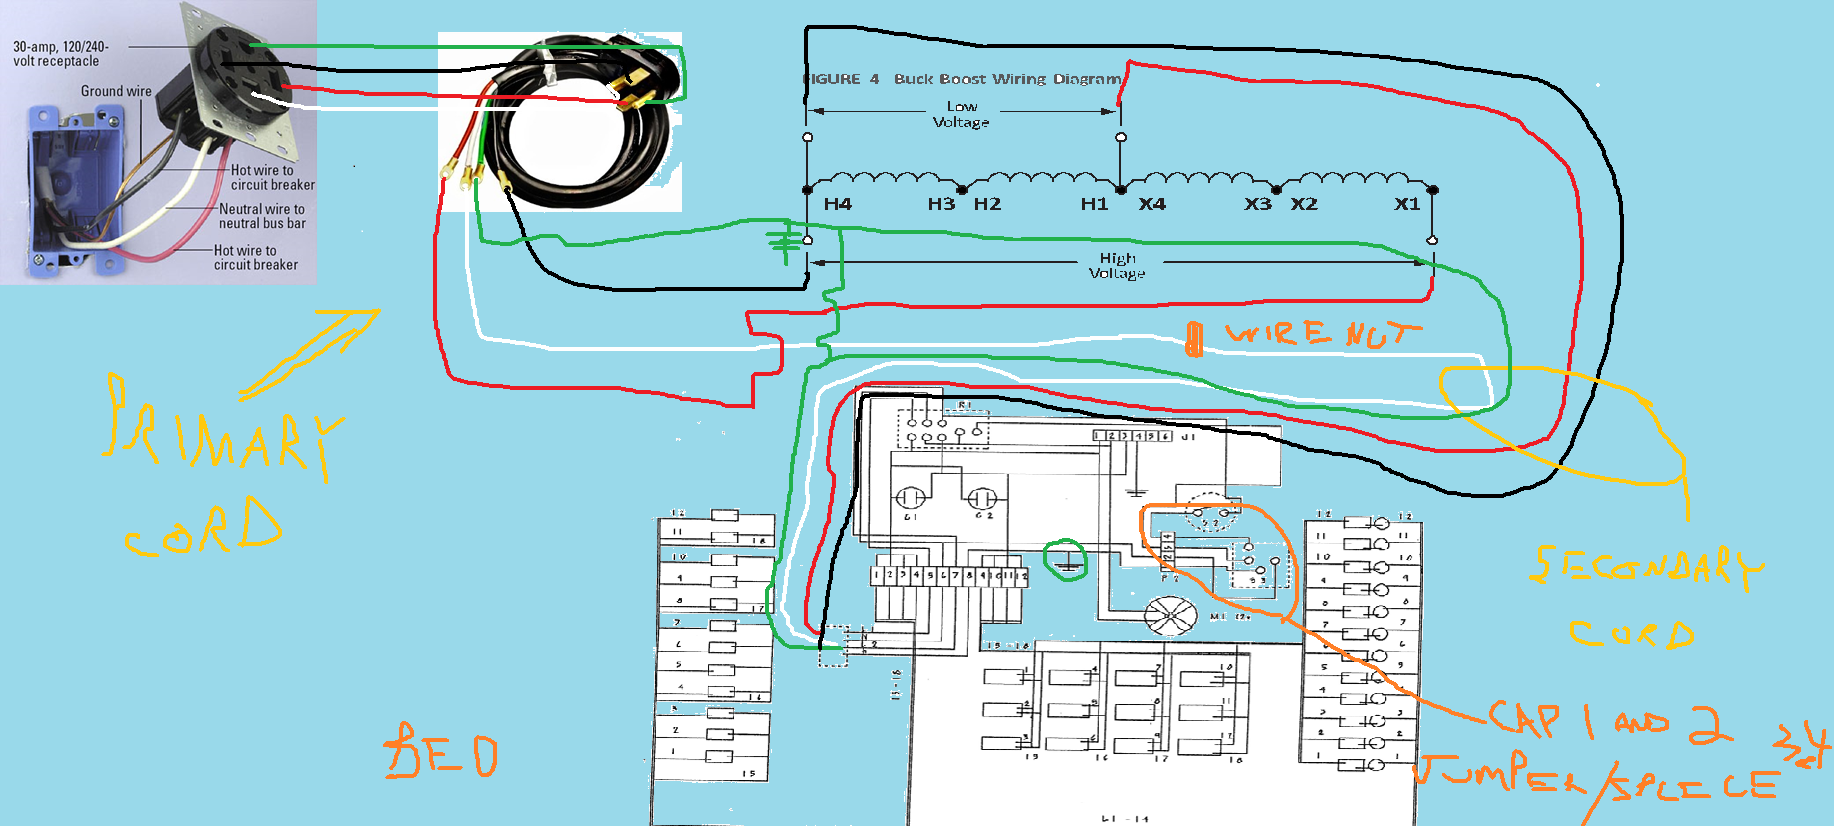 DIAGRAM] Tanning Bed Timer Wiring Diagram FULL Version HD Quality Wiring  Diagram - HRDIAGRAMS.GENAZZANOBUONCONSIGLIO.IThrdiagrams.genazzanobuonconsiglio.it